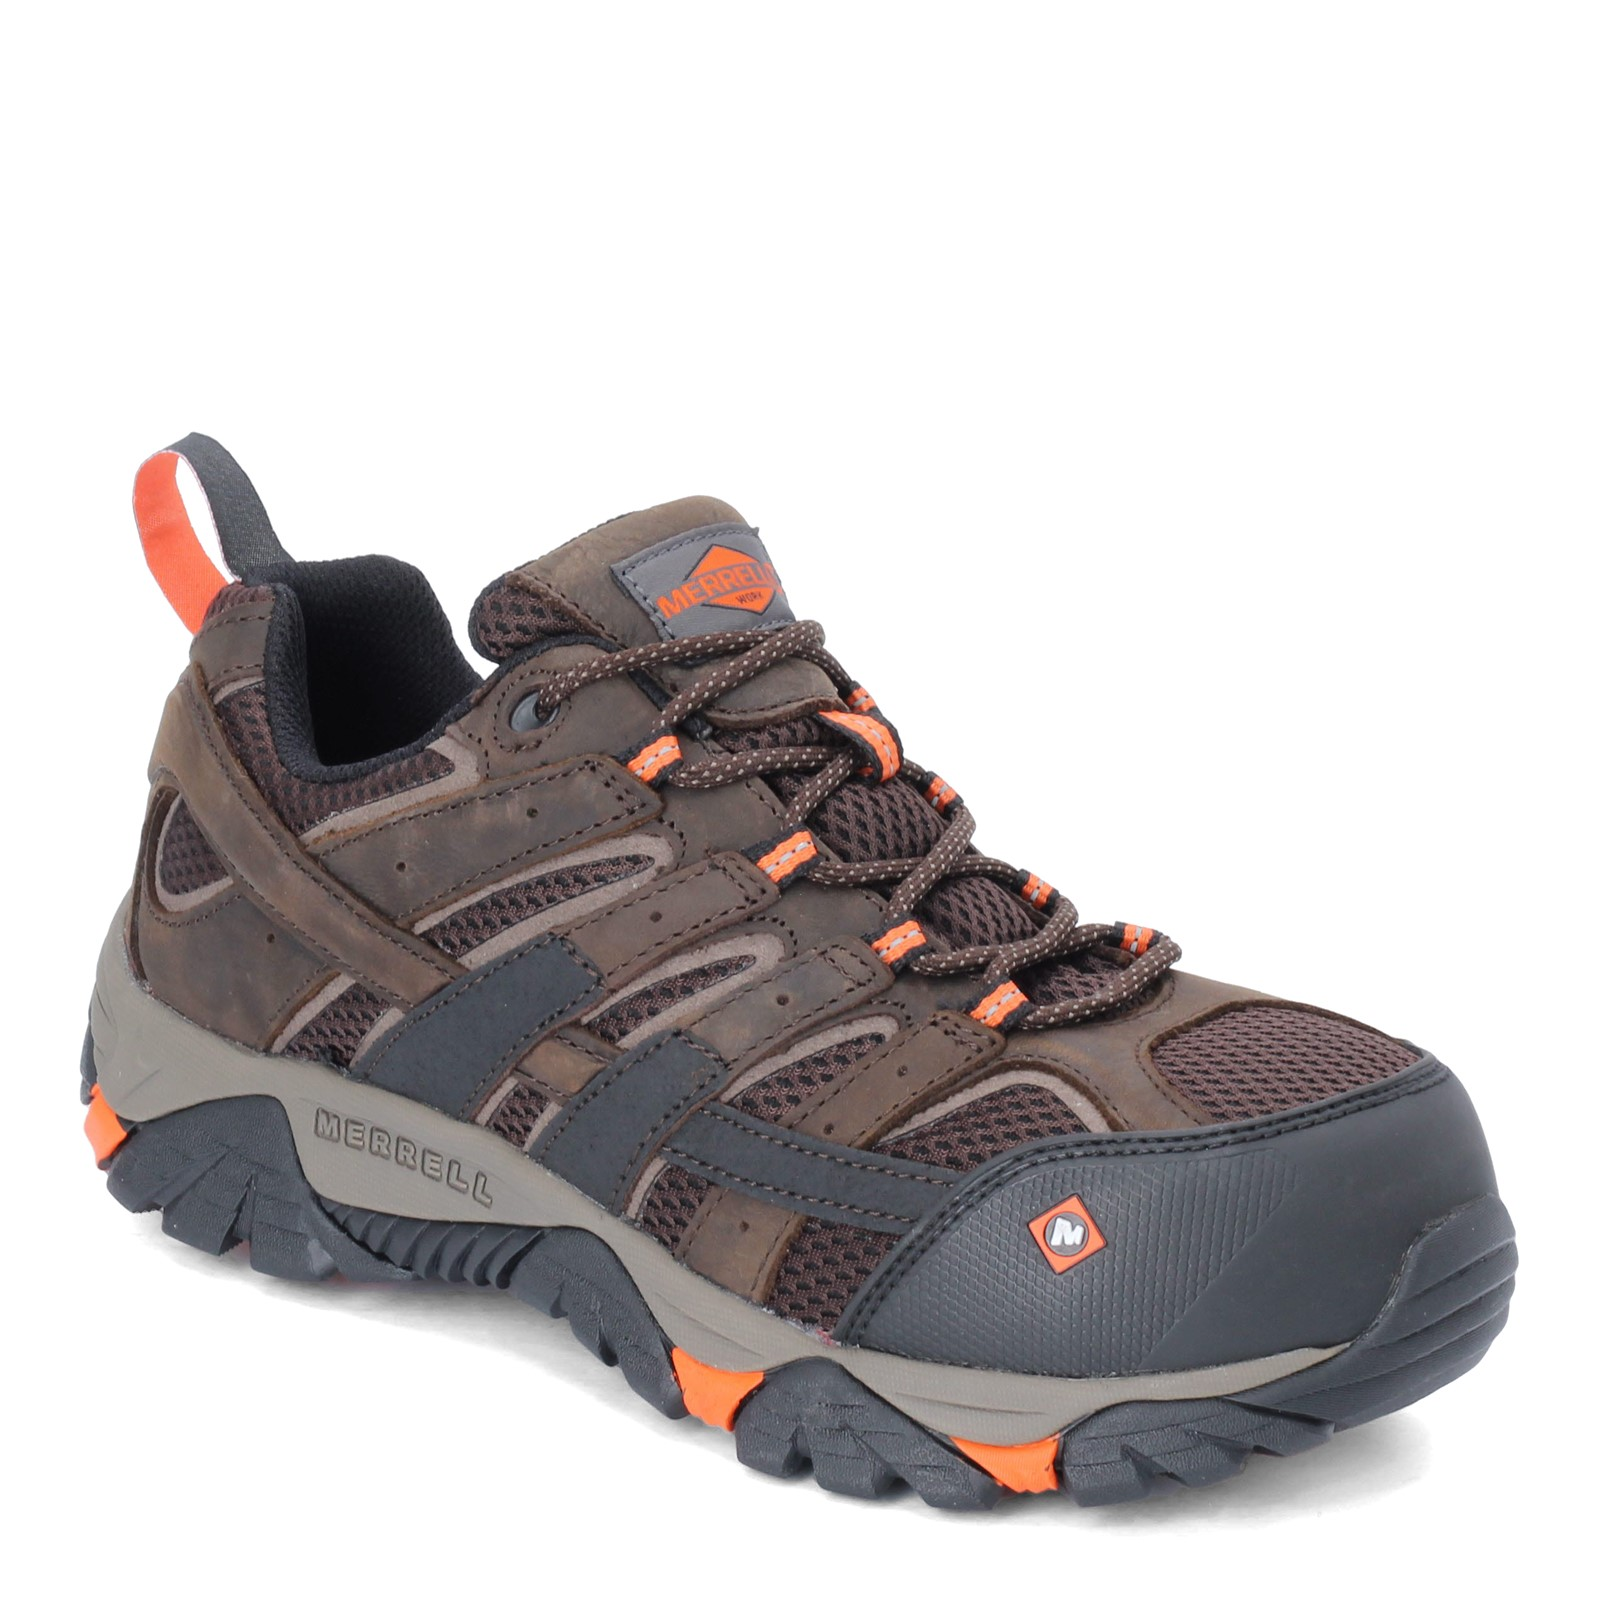 5a9acf0889b2e Home; Men's Merrell, Moab 2 Vapor Comp Toe. Previous. default view ...